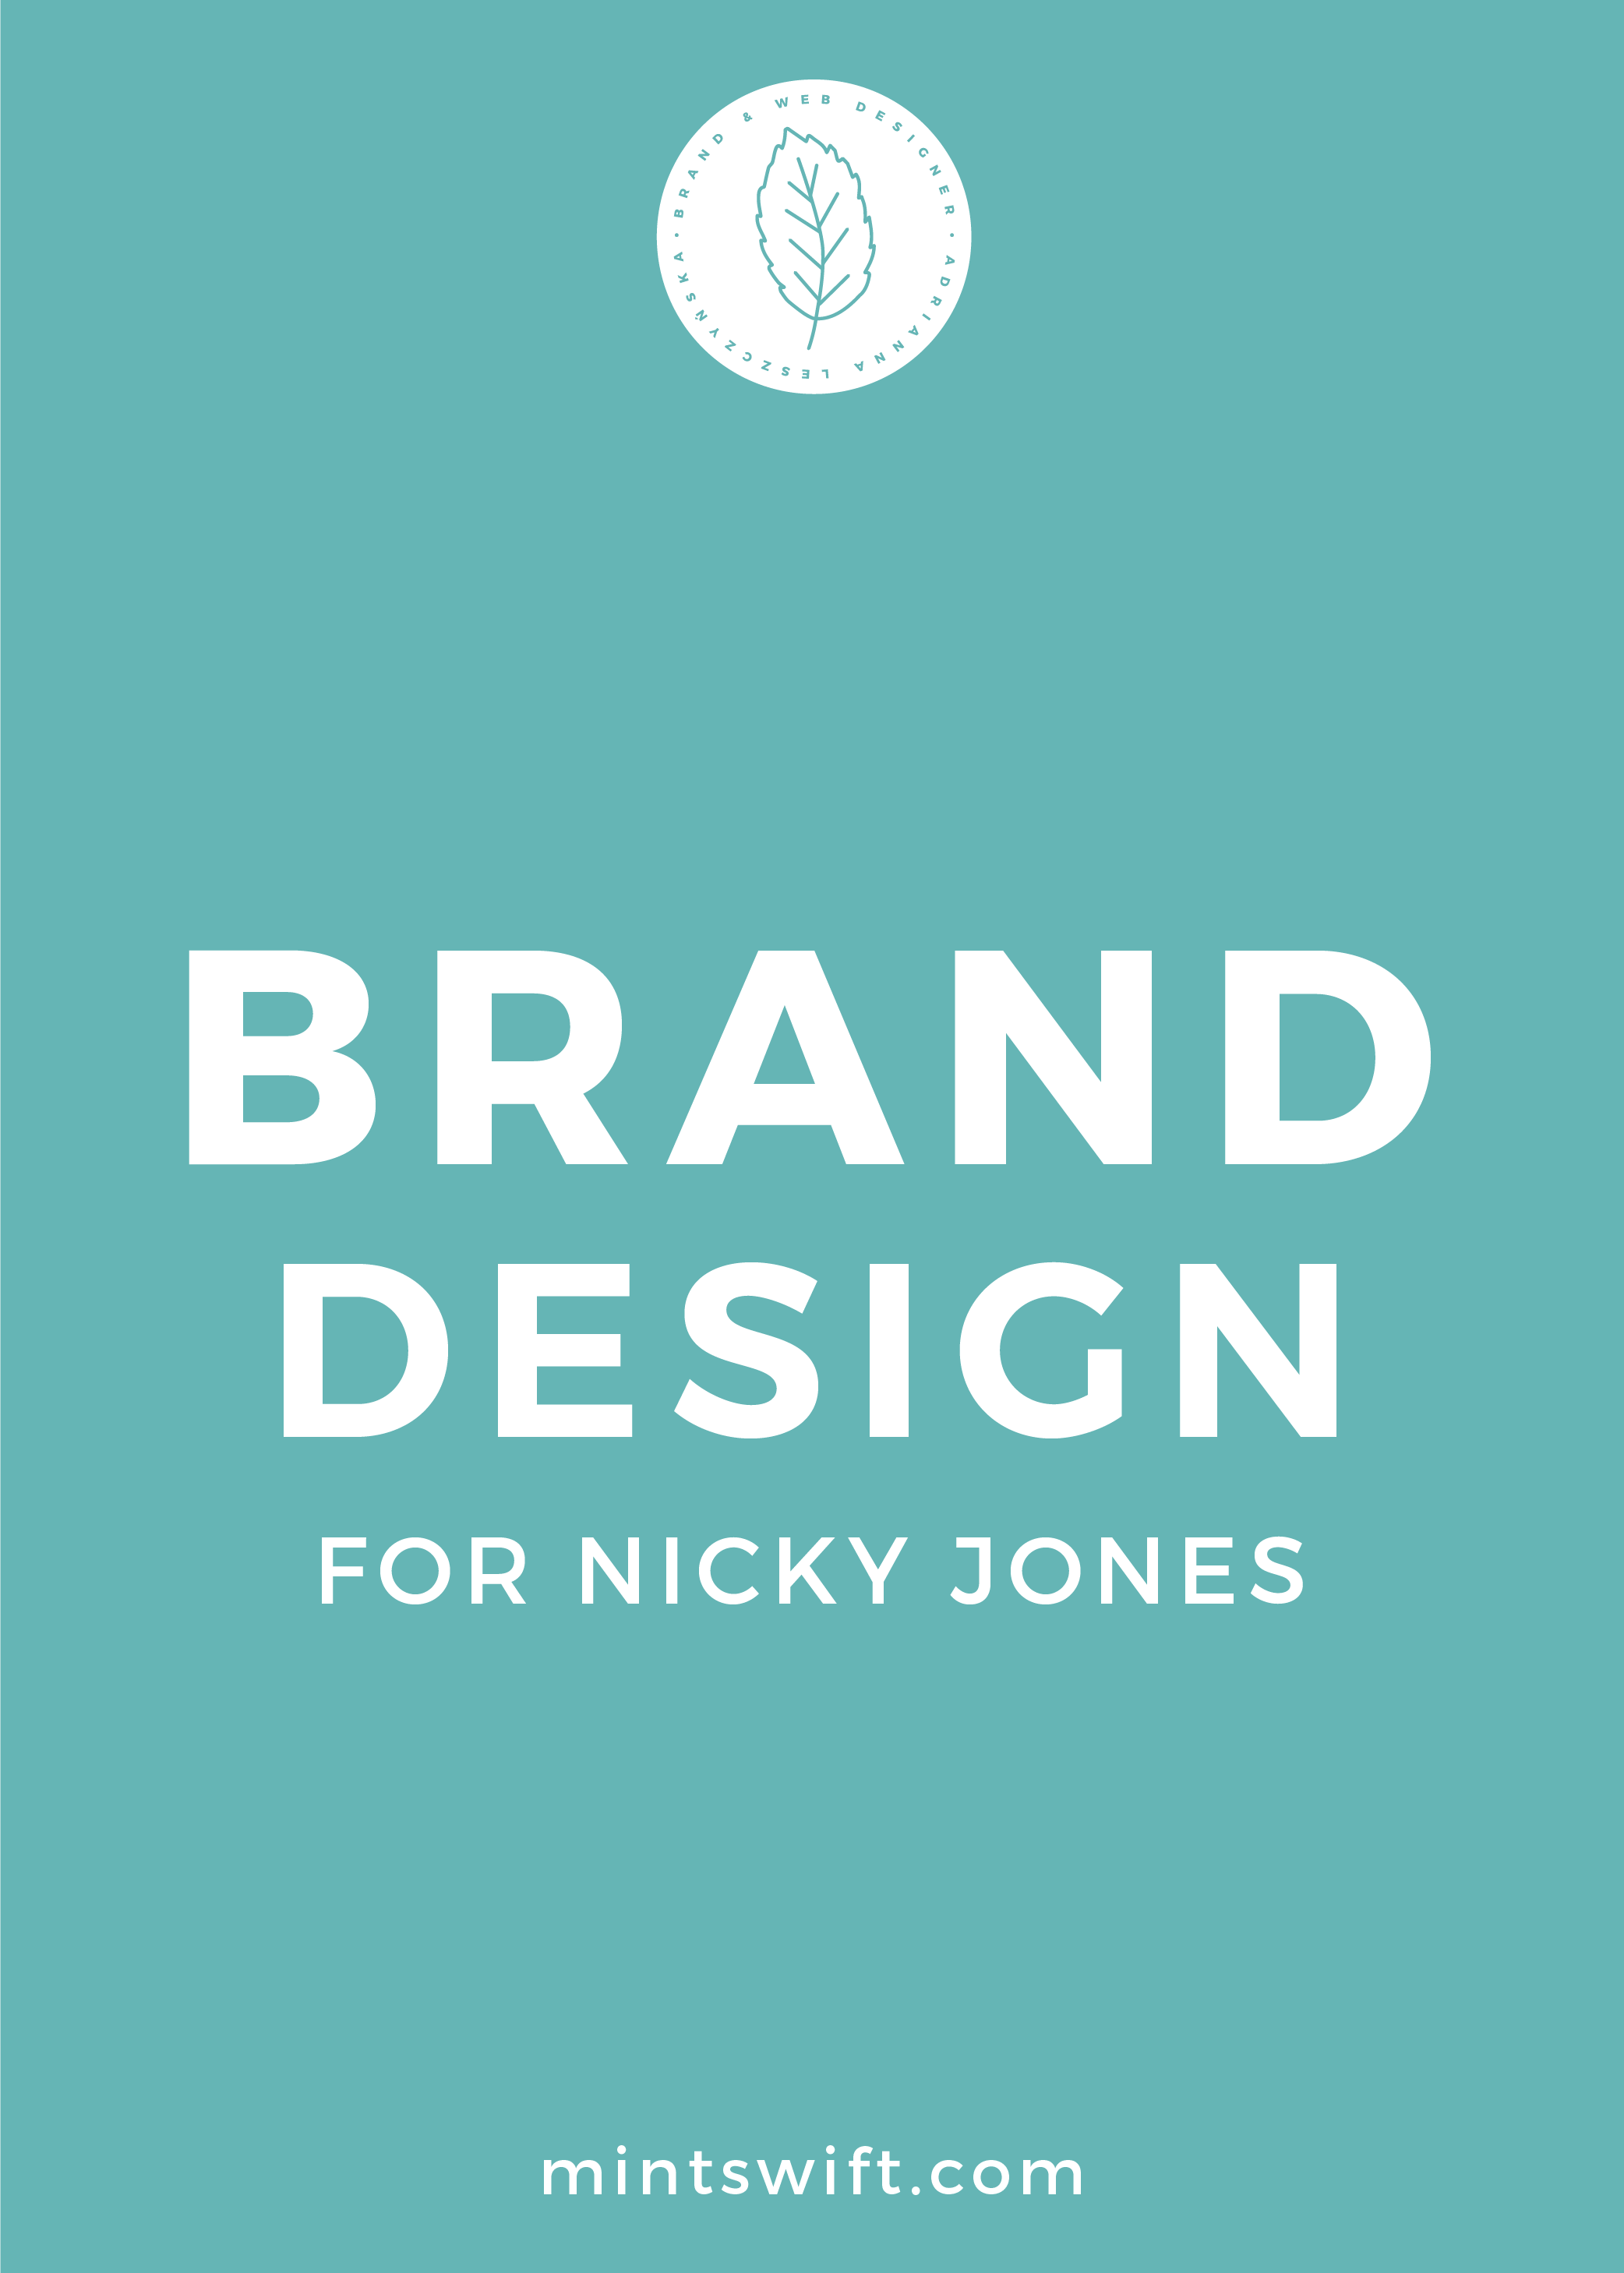 Brand Design for Nicky Jones - MintSwift